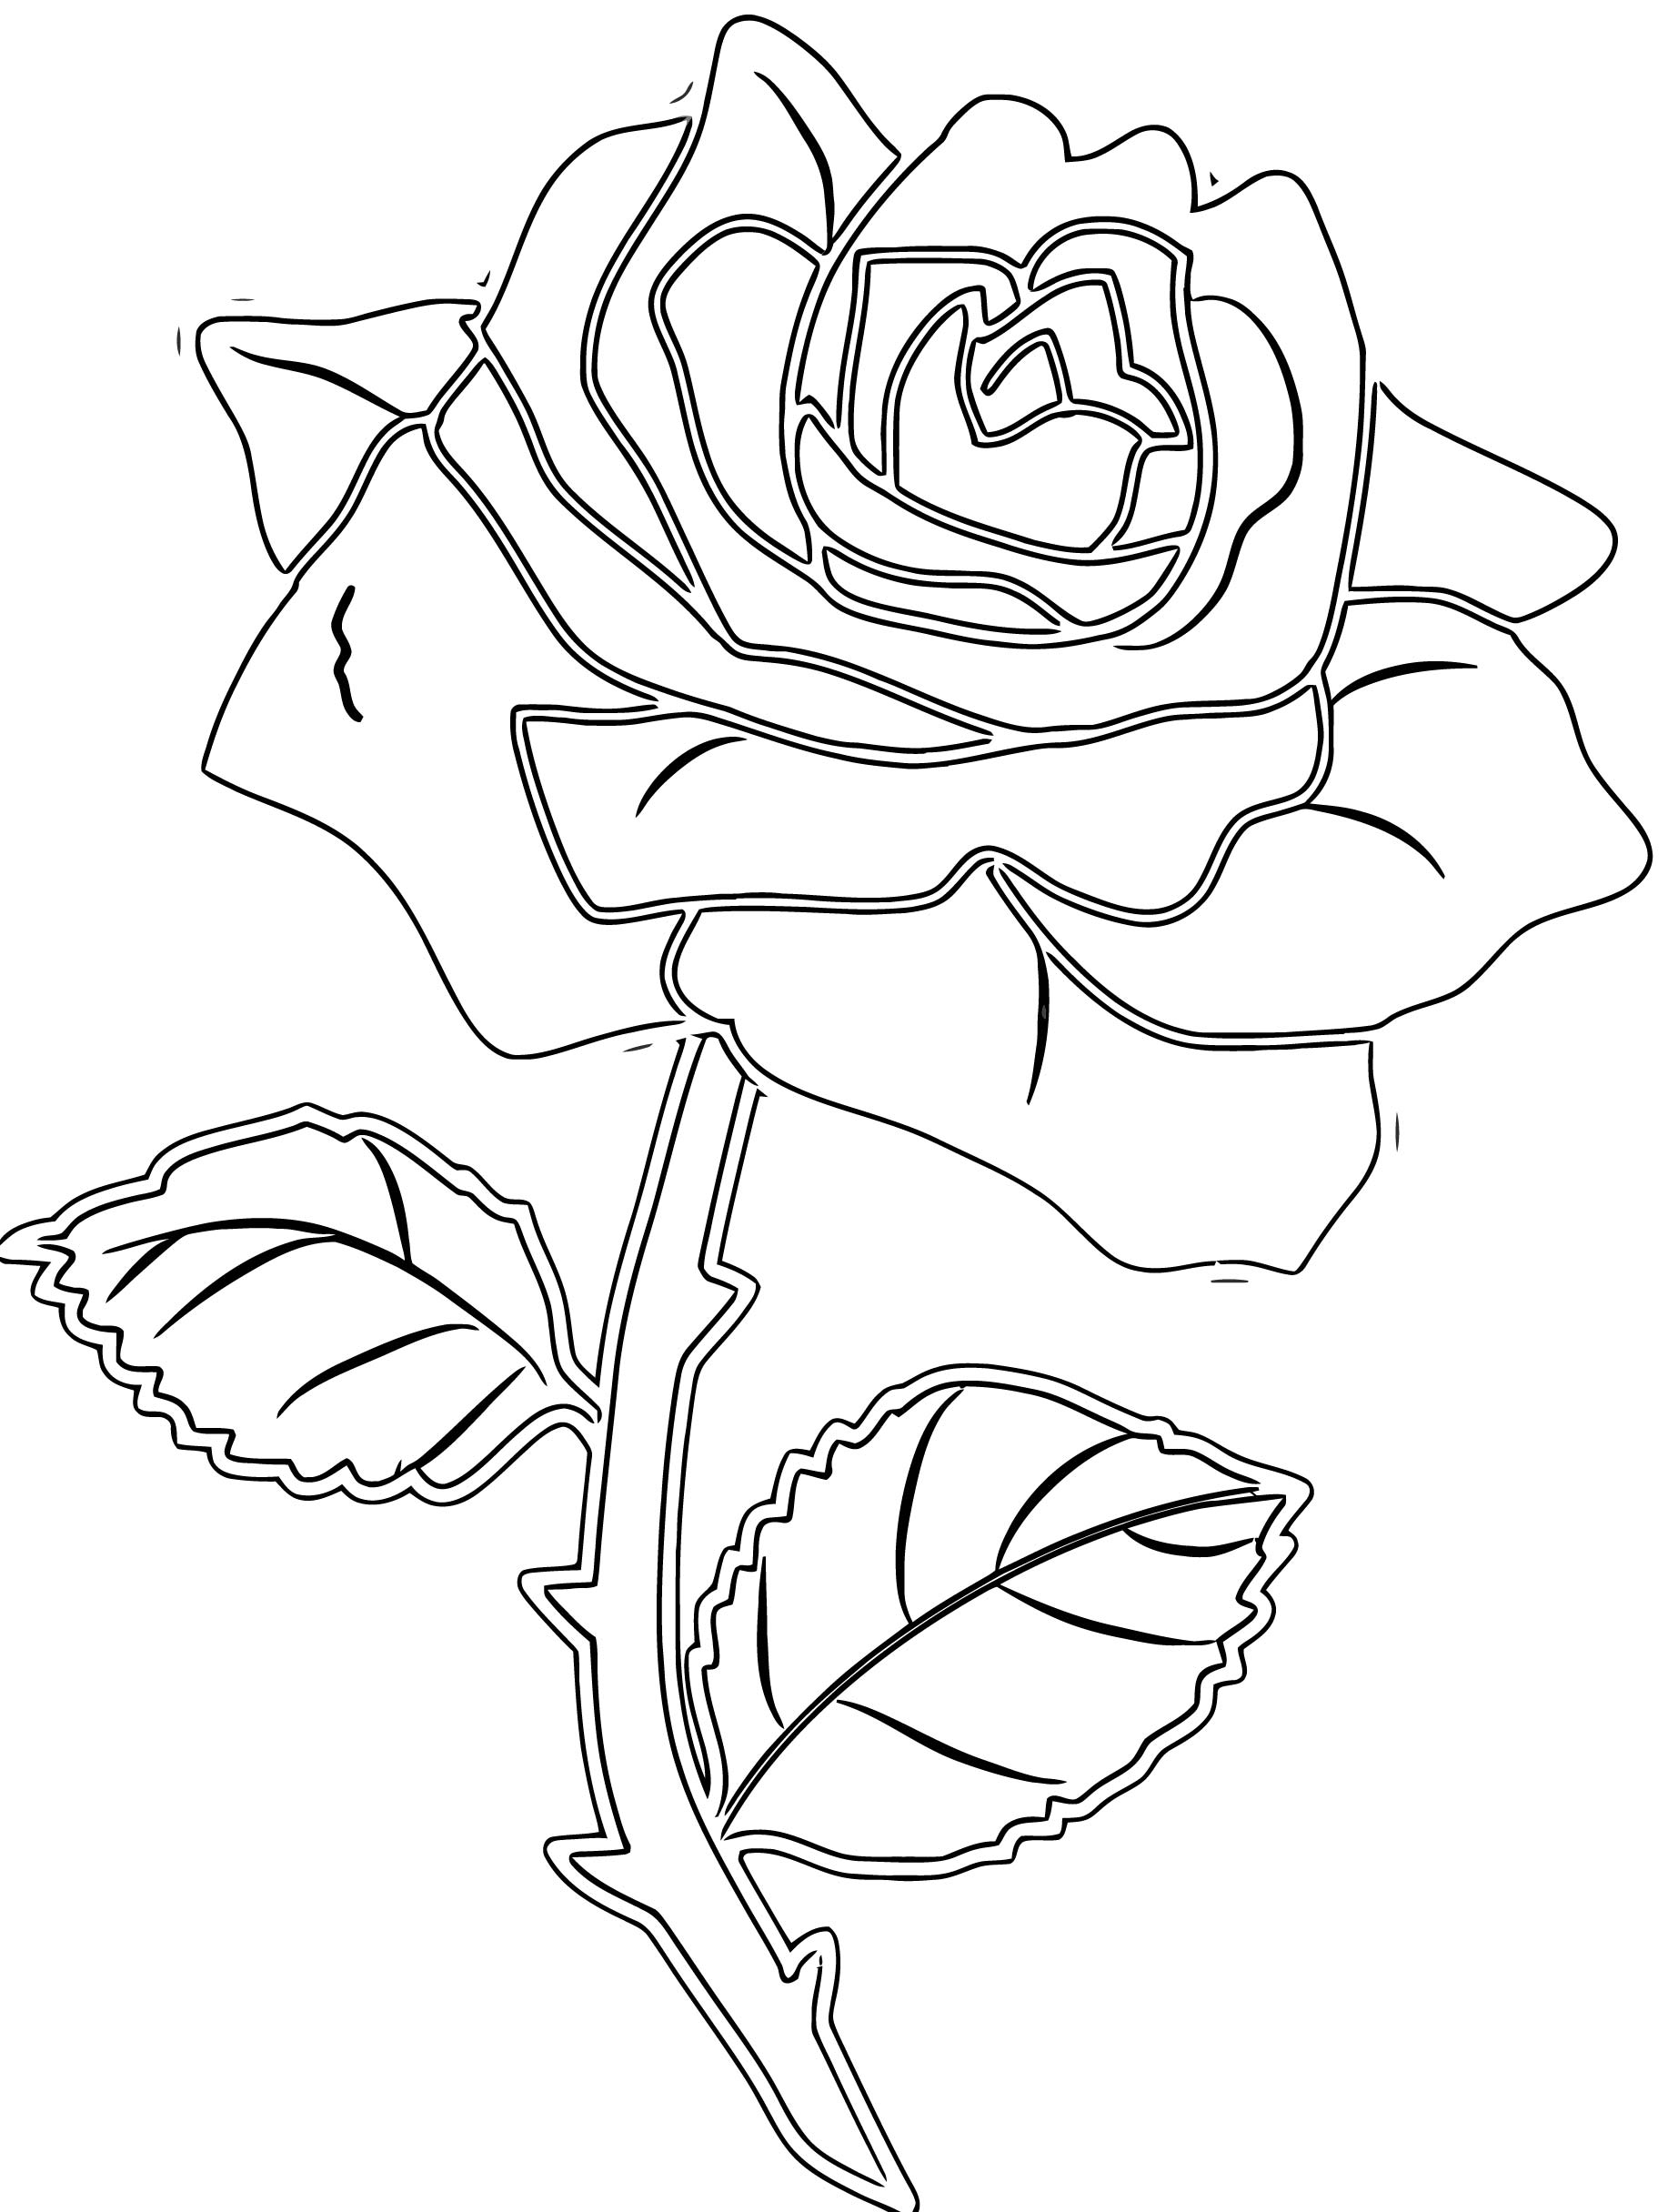 Knockout Rose Pic Clip Art Coloring Page